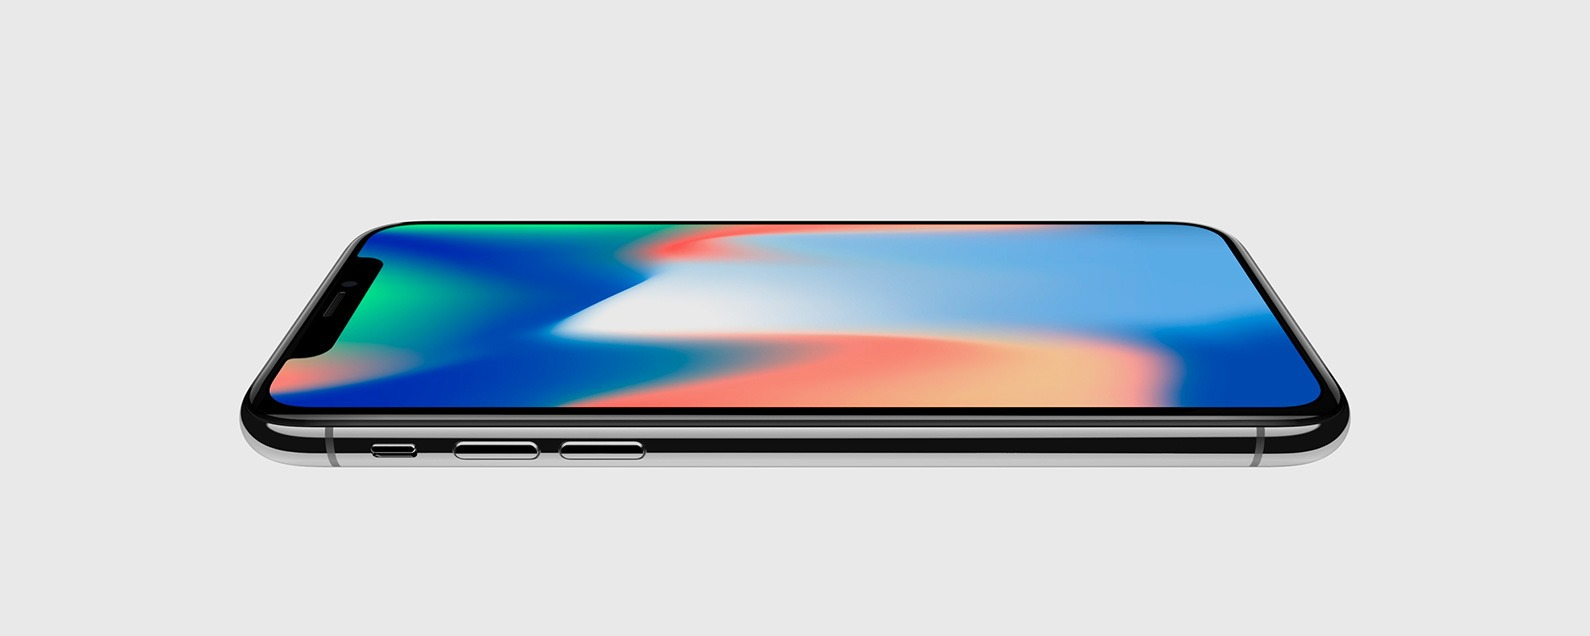 The IPhone X Is Available For Pre Order At 1201 Am West Coast Time On Friday October 27 Basically This Means You Will Be Staying Up Very Late